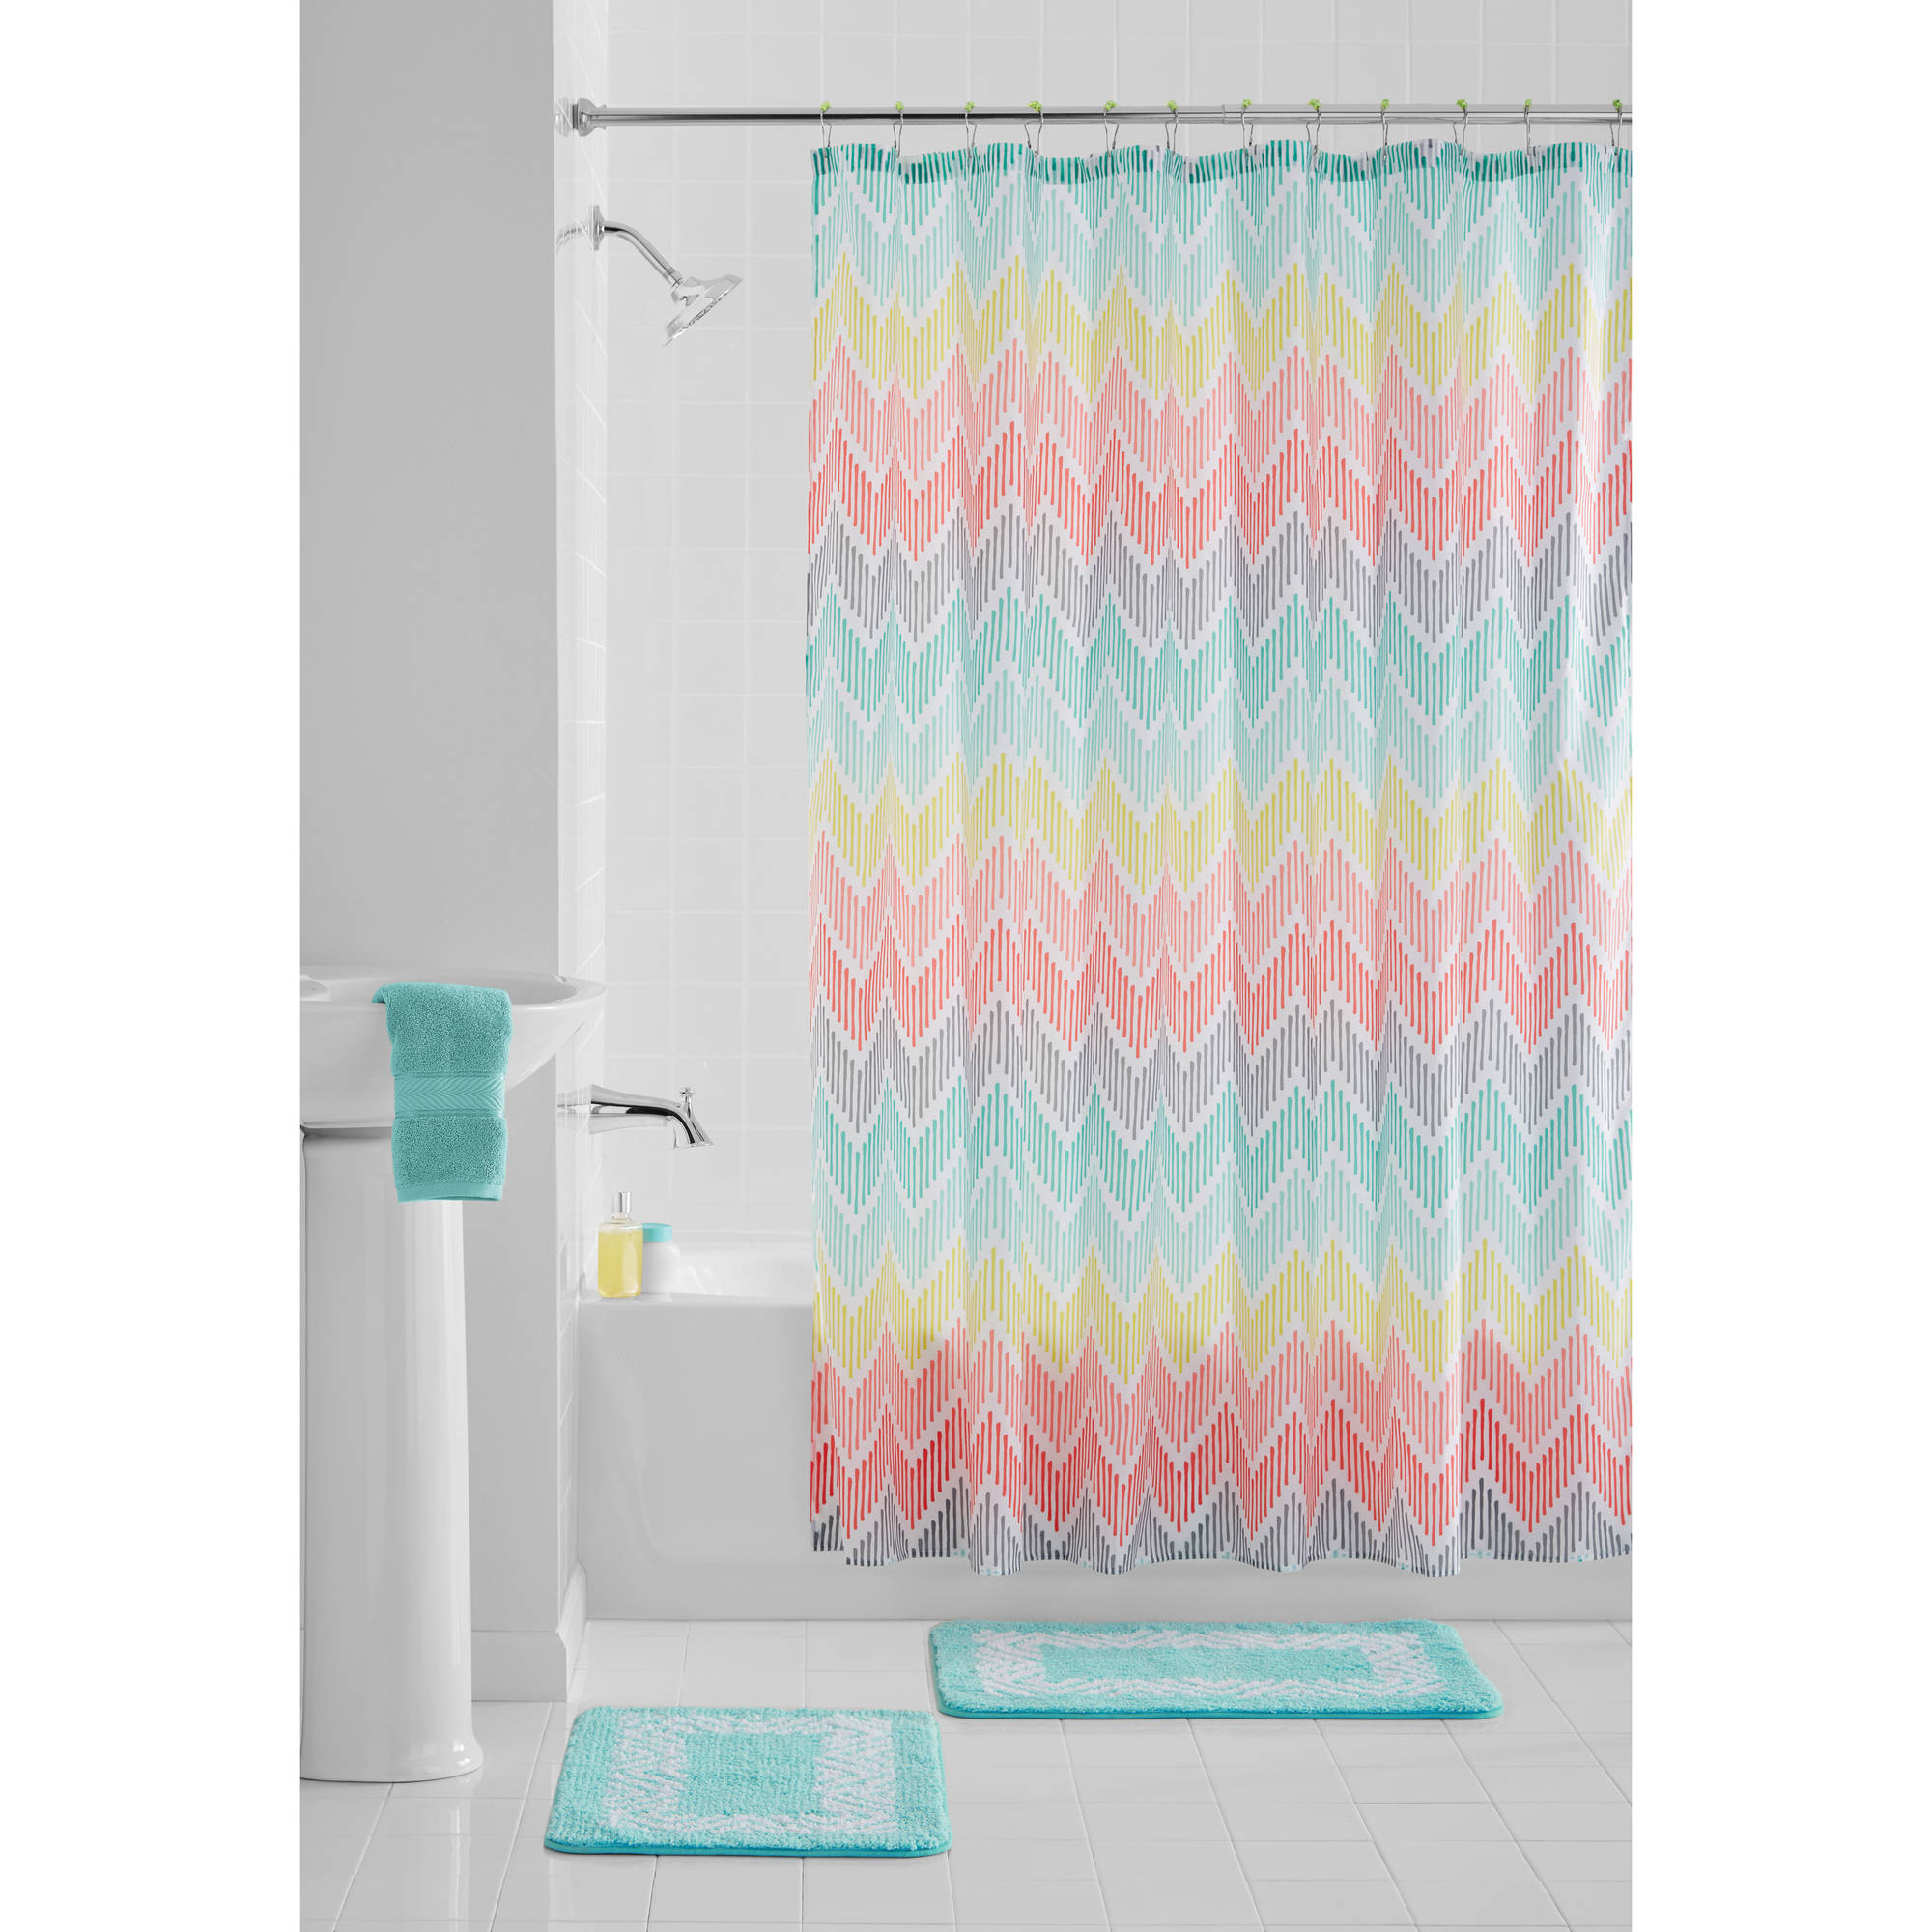 Chevron bathroom sets with shower curtain and rugs - Mainstays Multicolor Chevron 15piece Polyester Bath In A Bag Set Shower